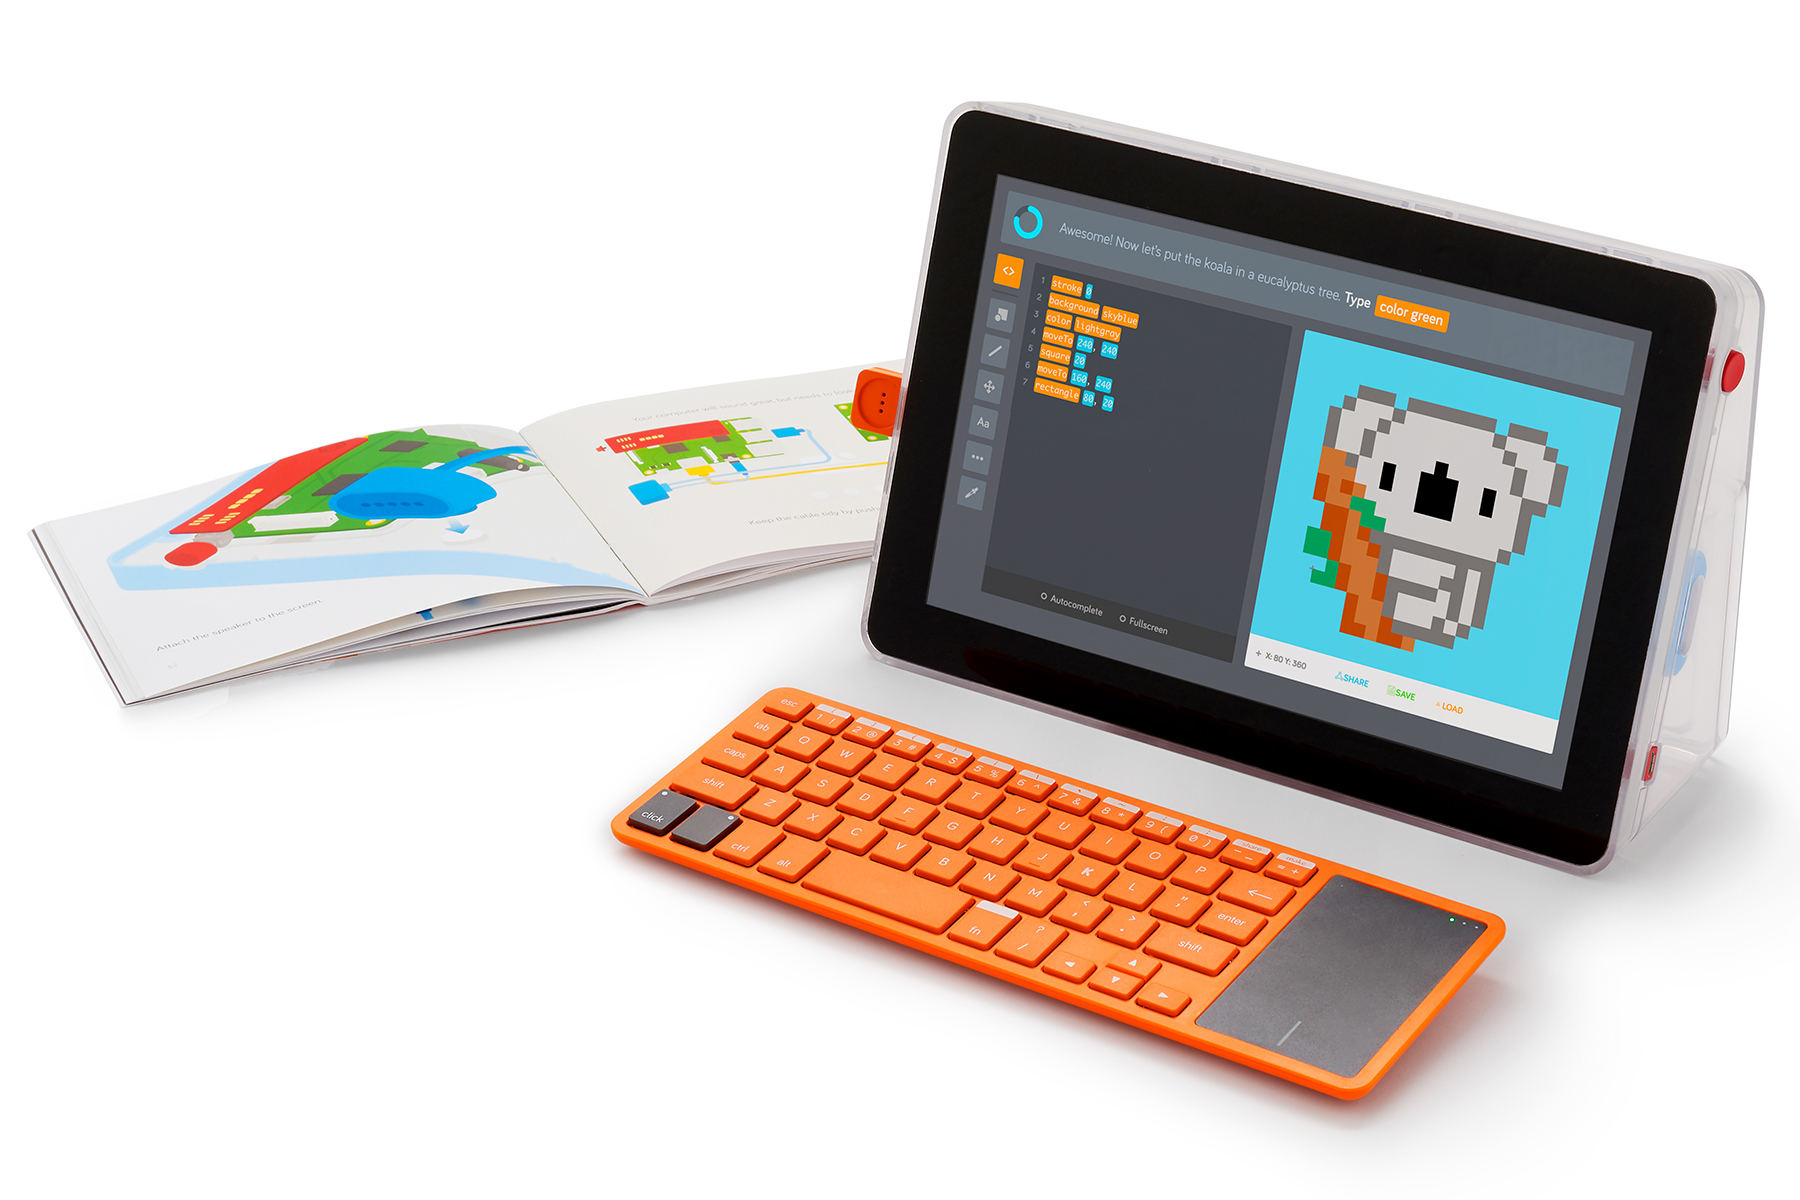 Kano combines its coding kits for a diy laptop kano solutioingenieria Image collections